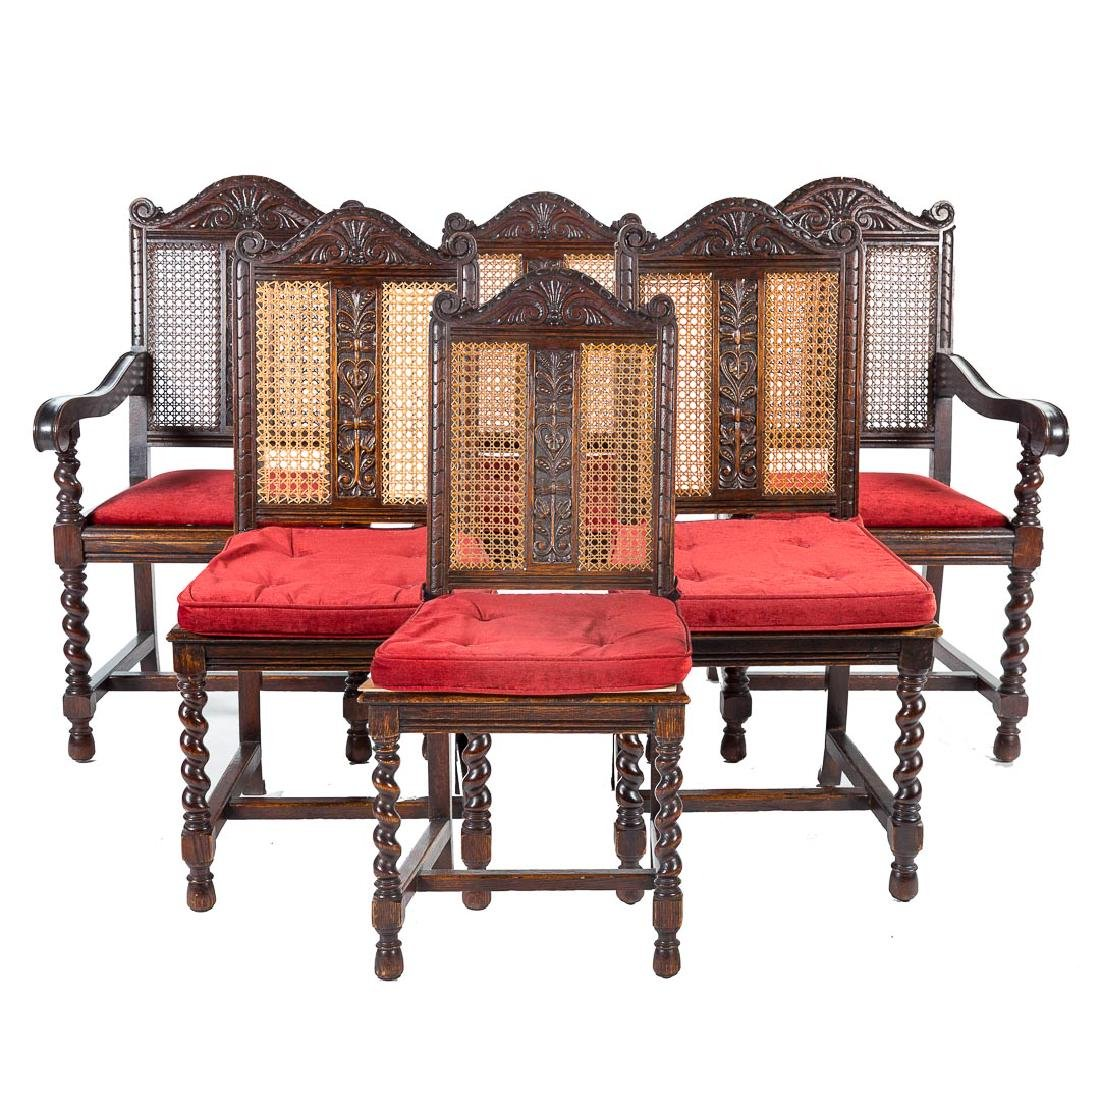 Six Jacobean Revival carved oak dining chairs